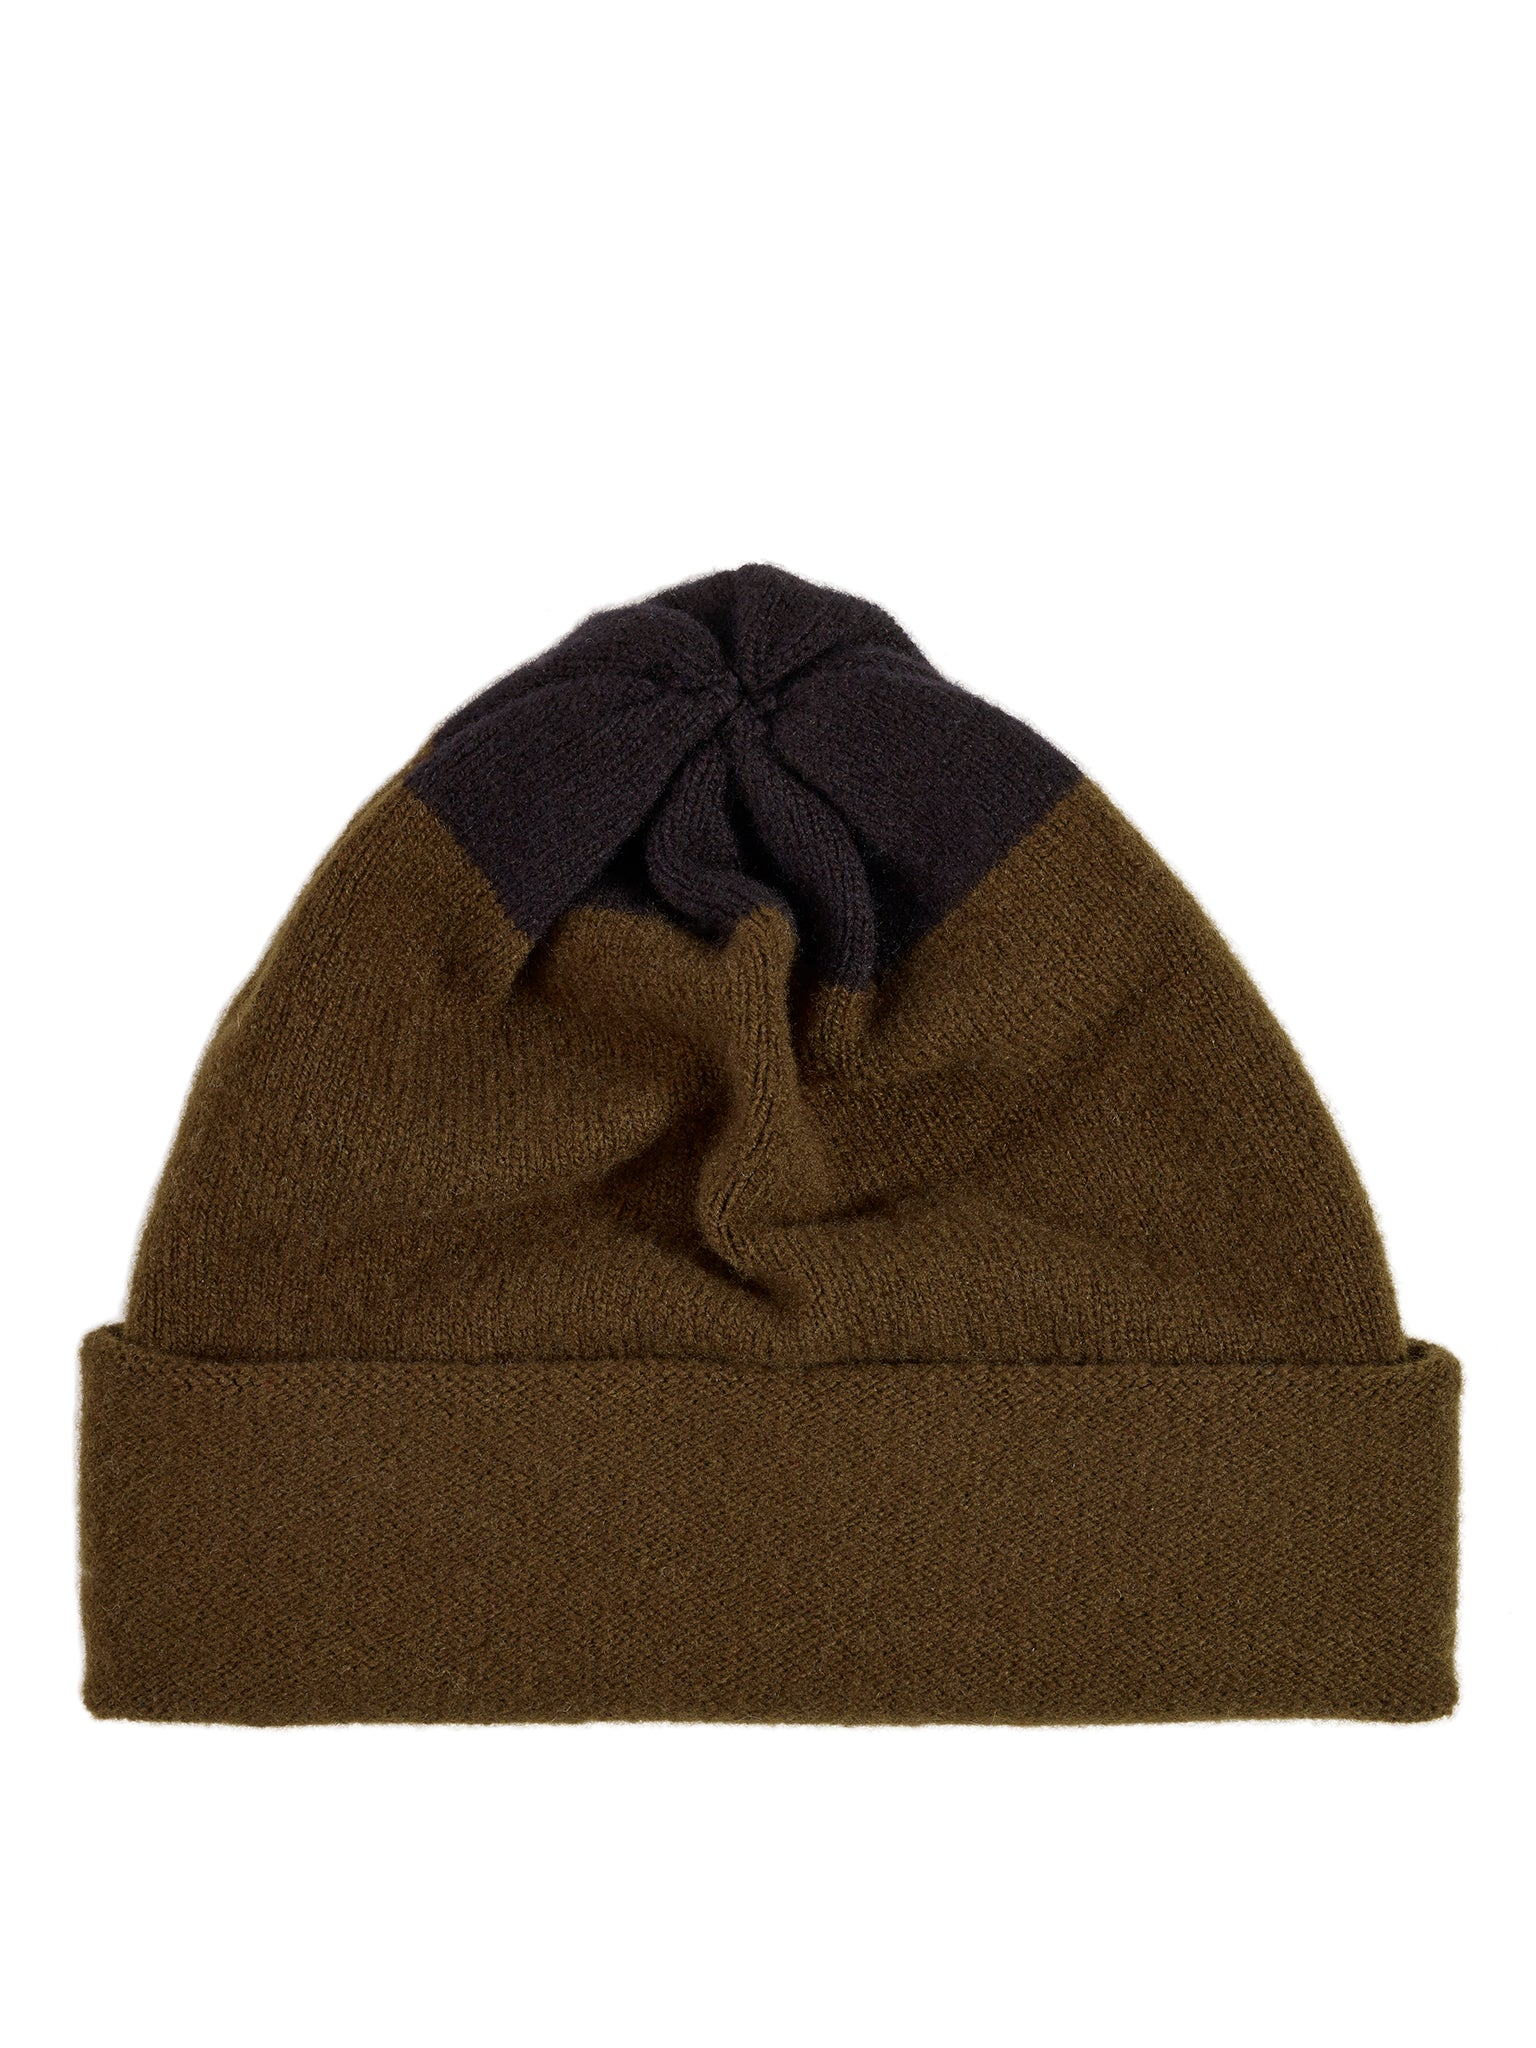 Top Spot Hat Military & Black Sample Sale